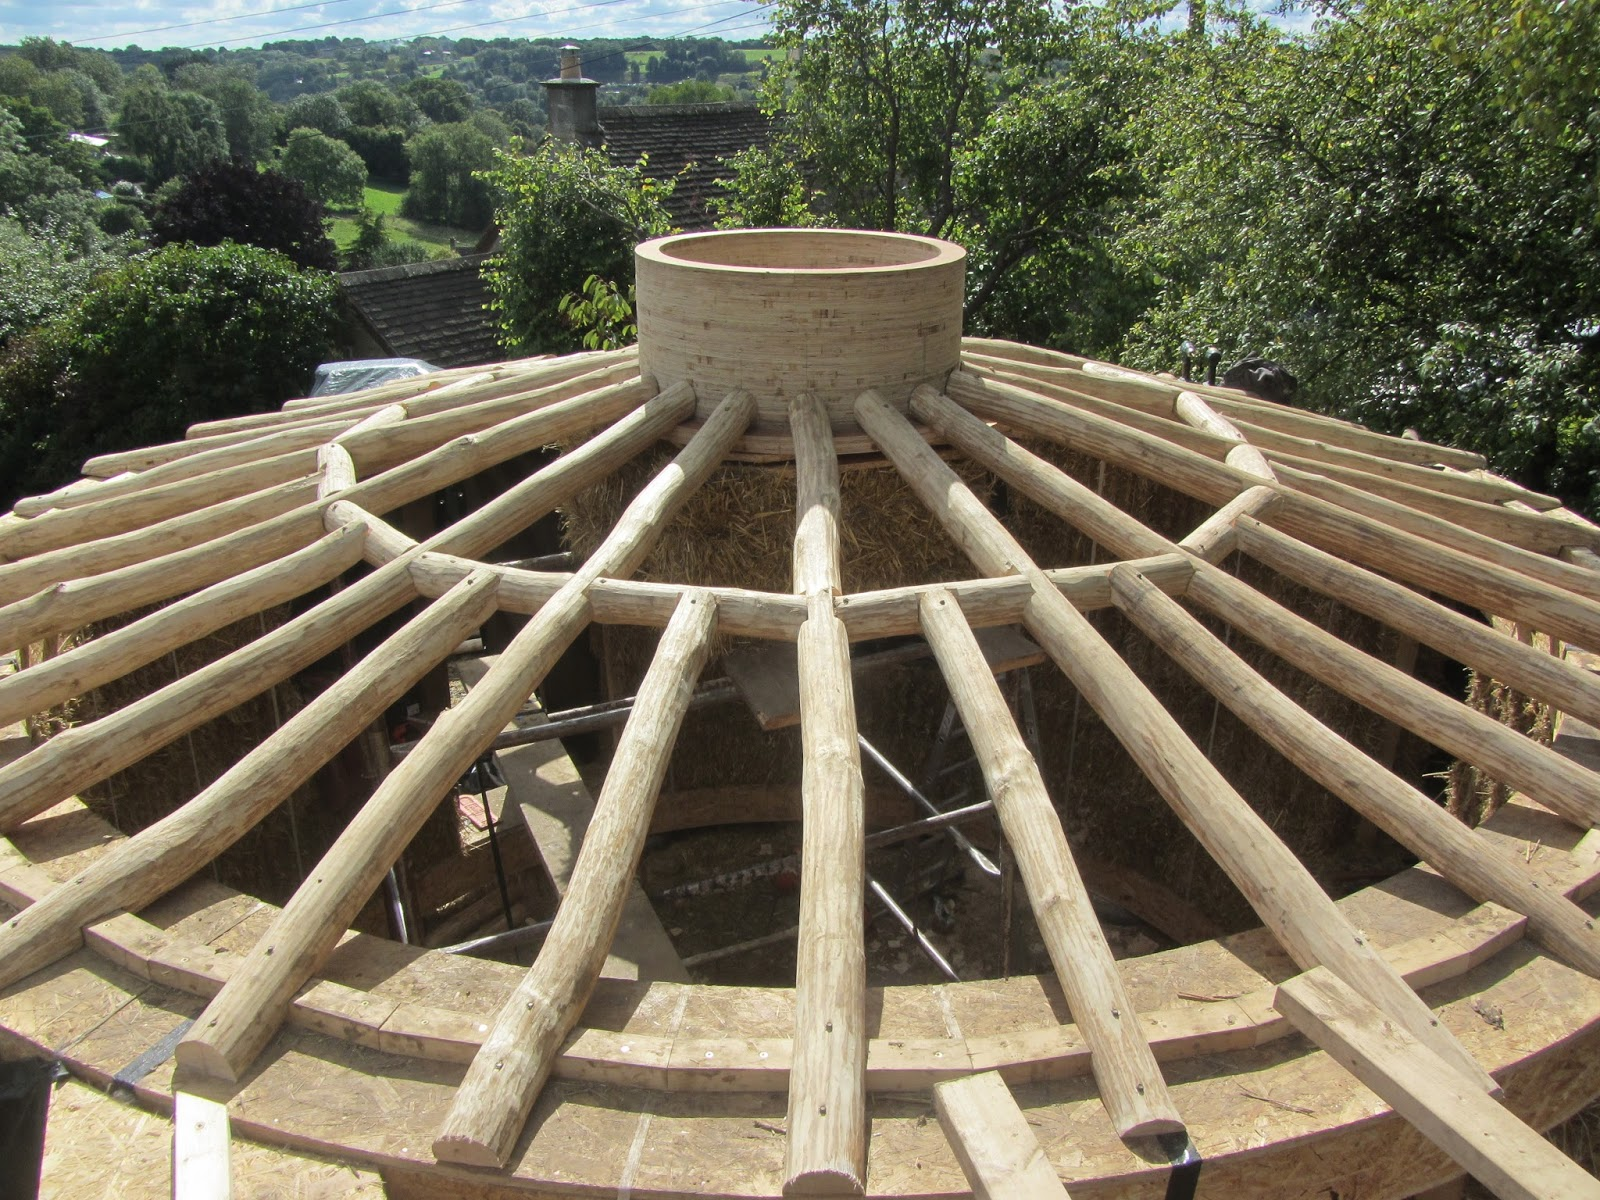 Ditchfield Crafts Roundwood Roofing